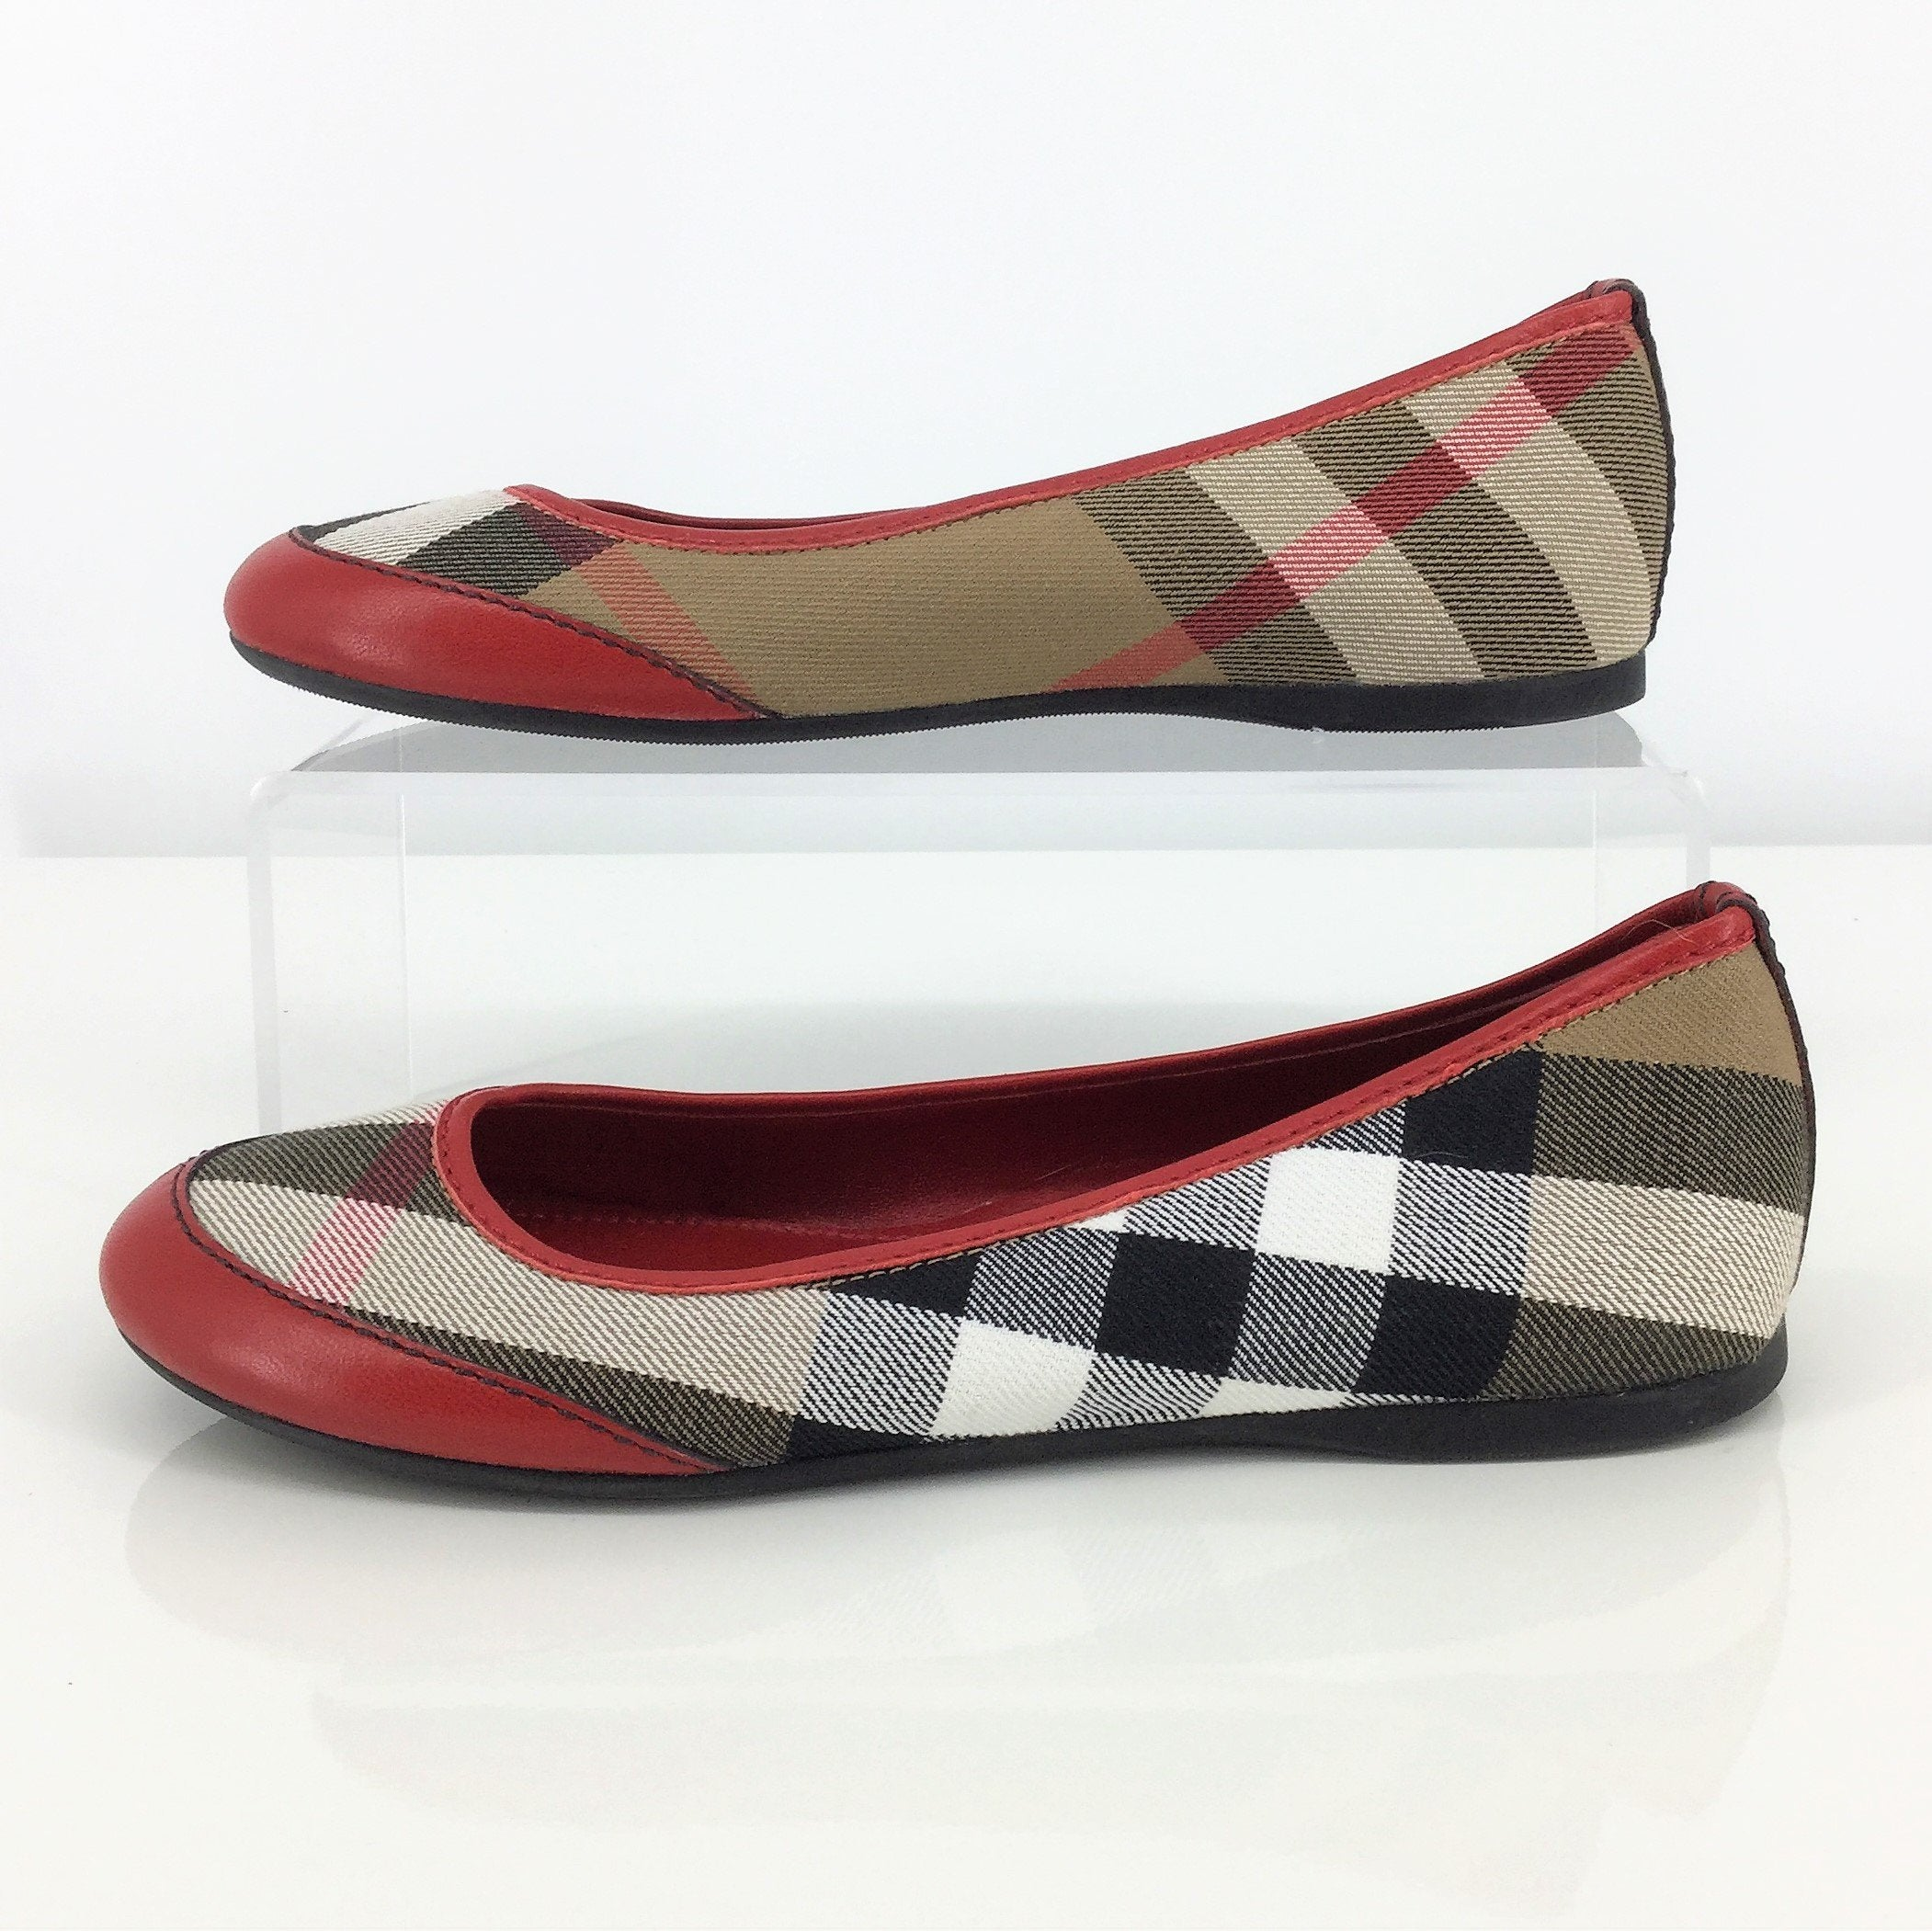 Burberry Flats Size:4 - <p>like new flats. signature burberry plaid canvas with red leather trim and toes. adult size 4.</p>